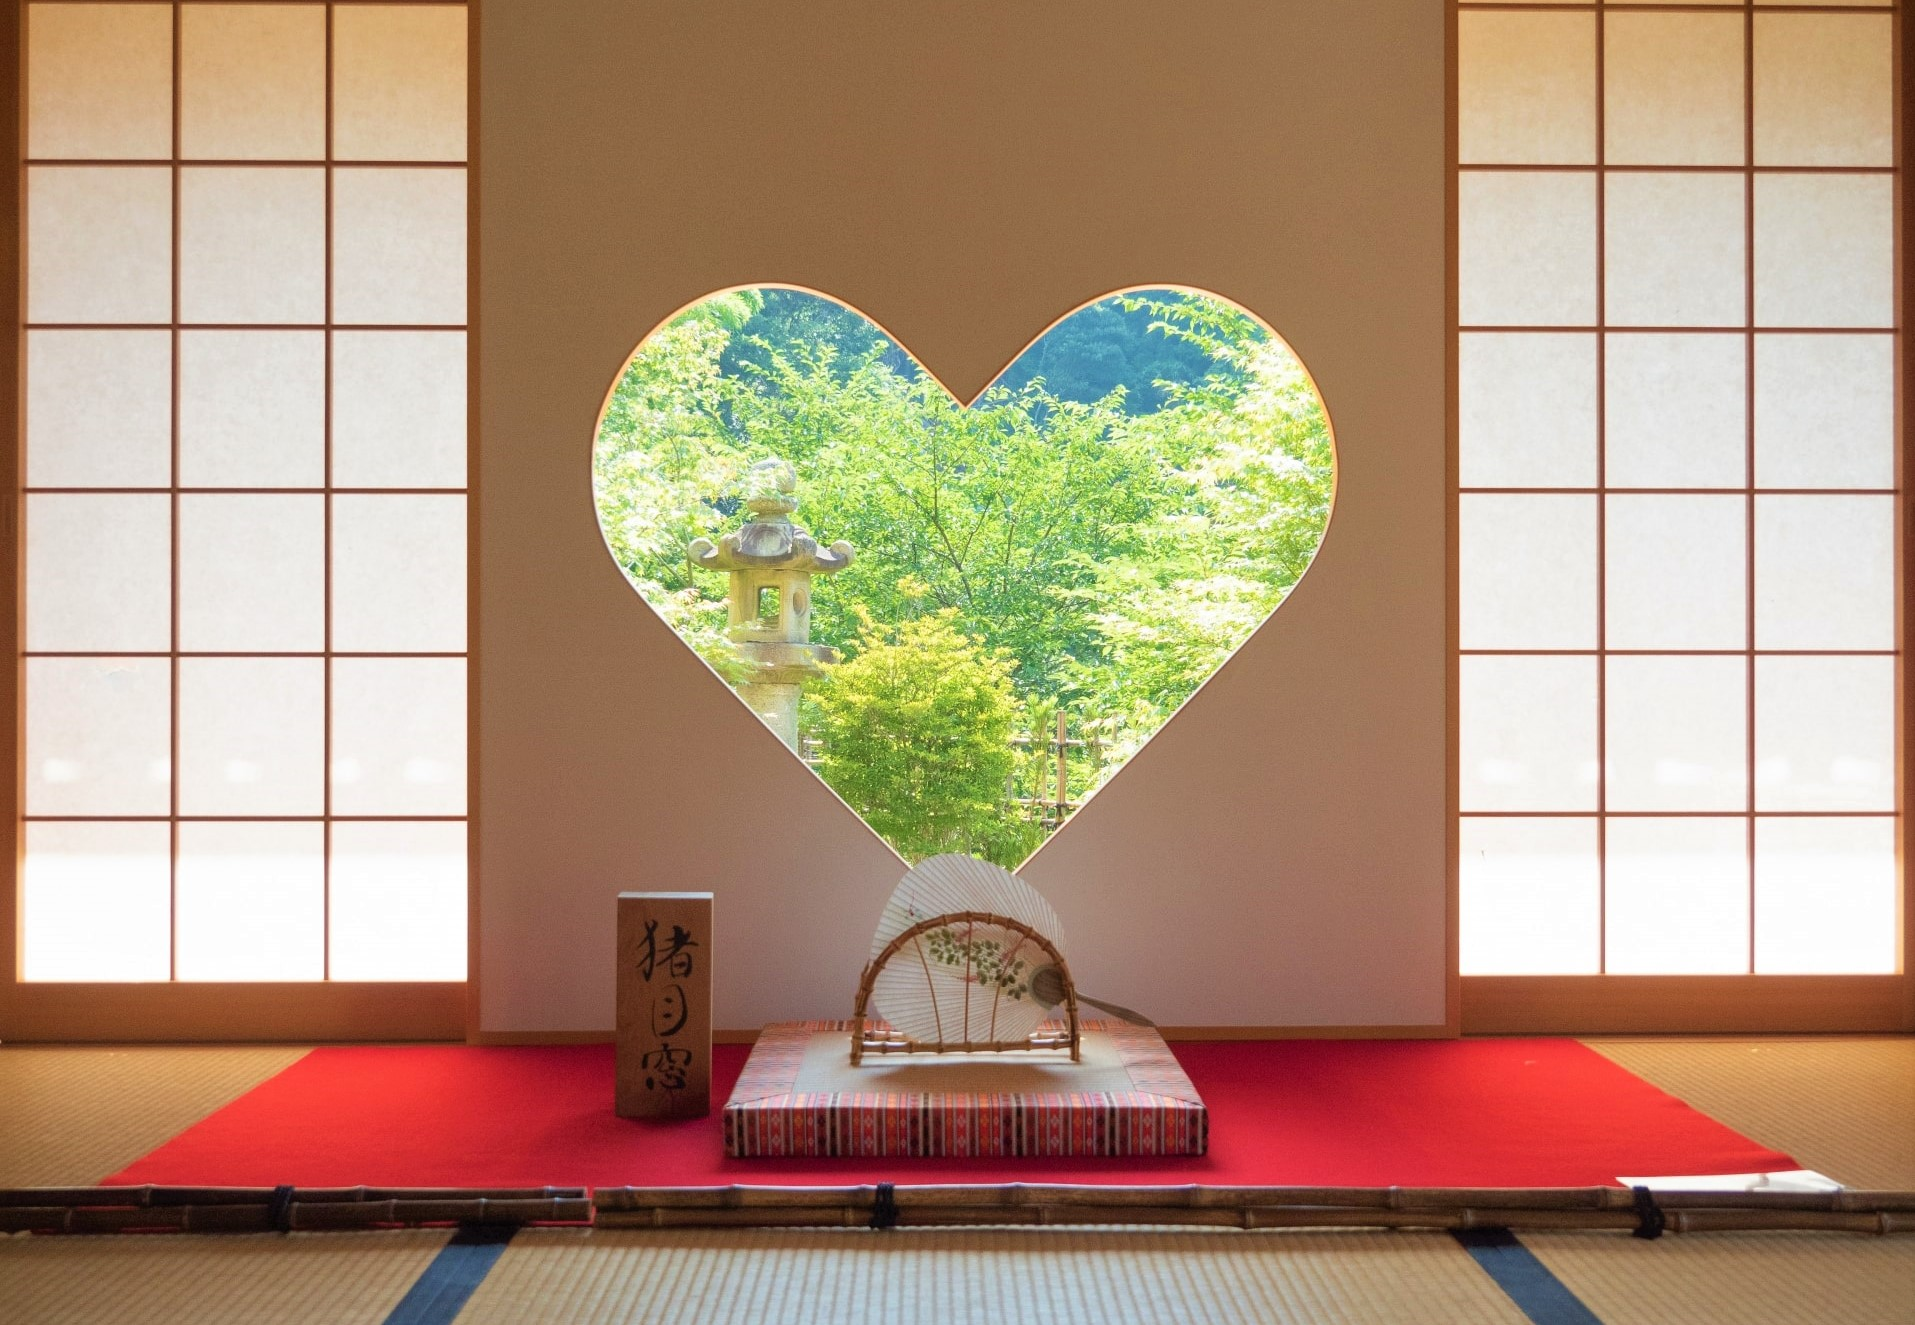 The famous heart-shaped window at Shoujuin Temple